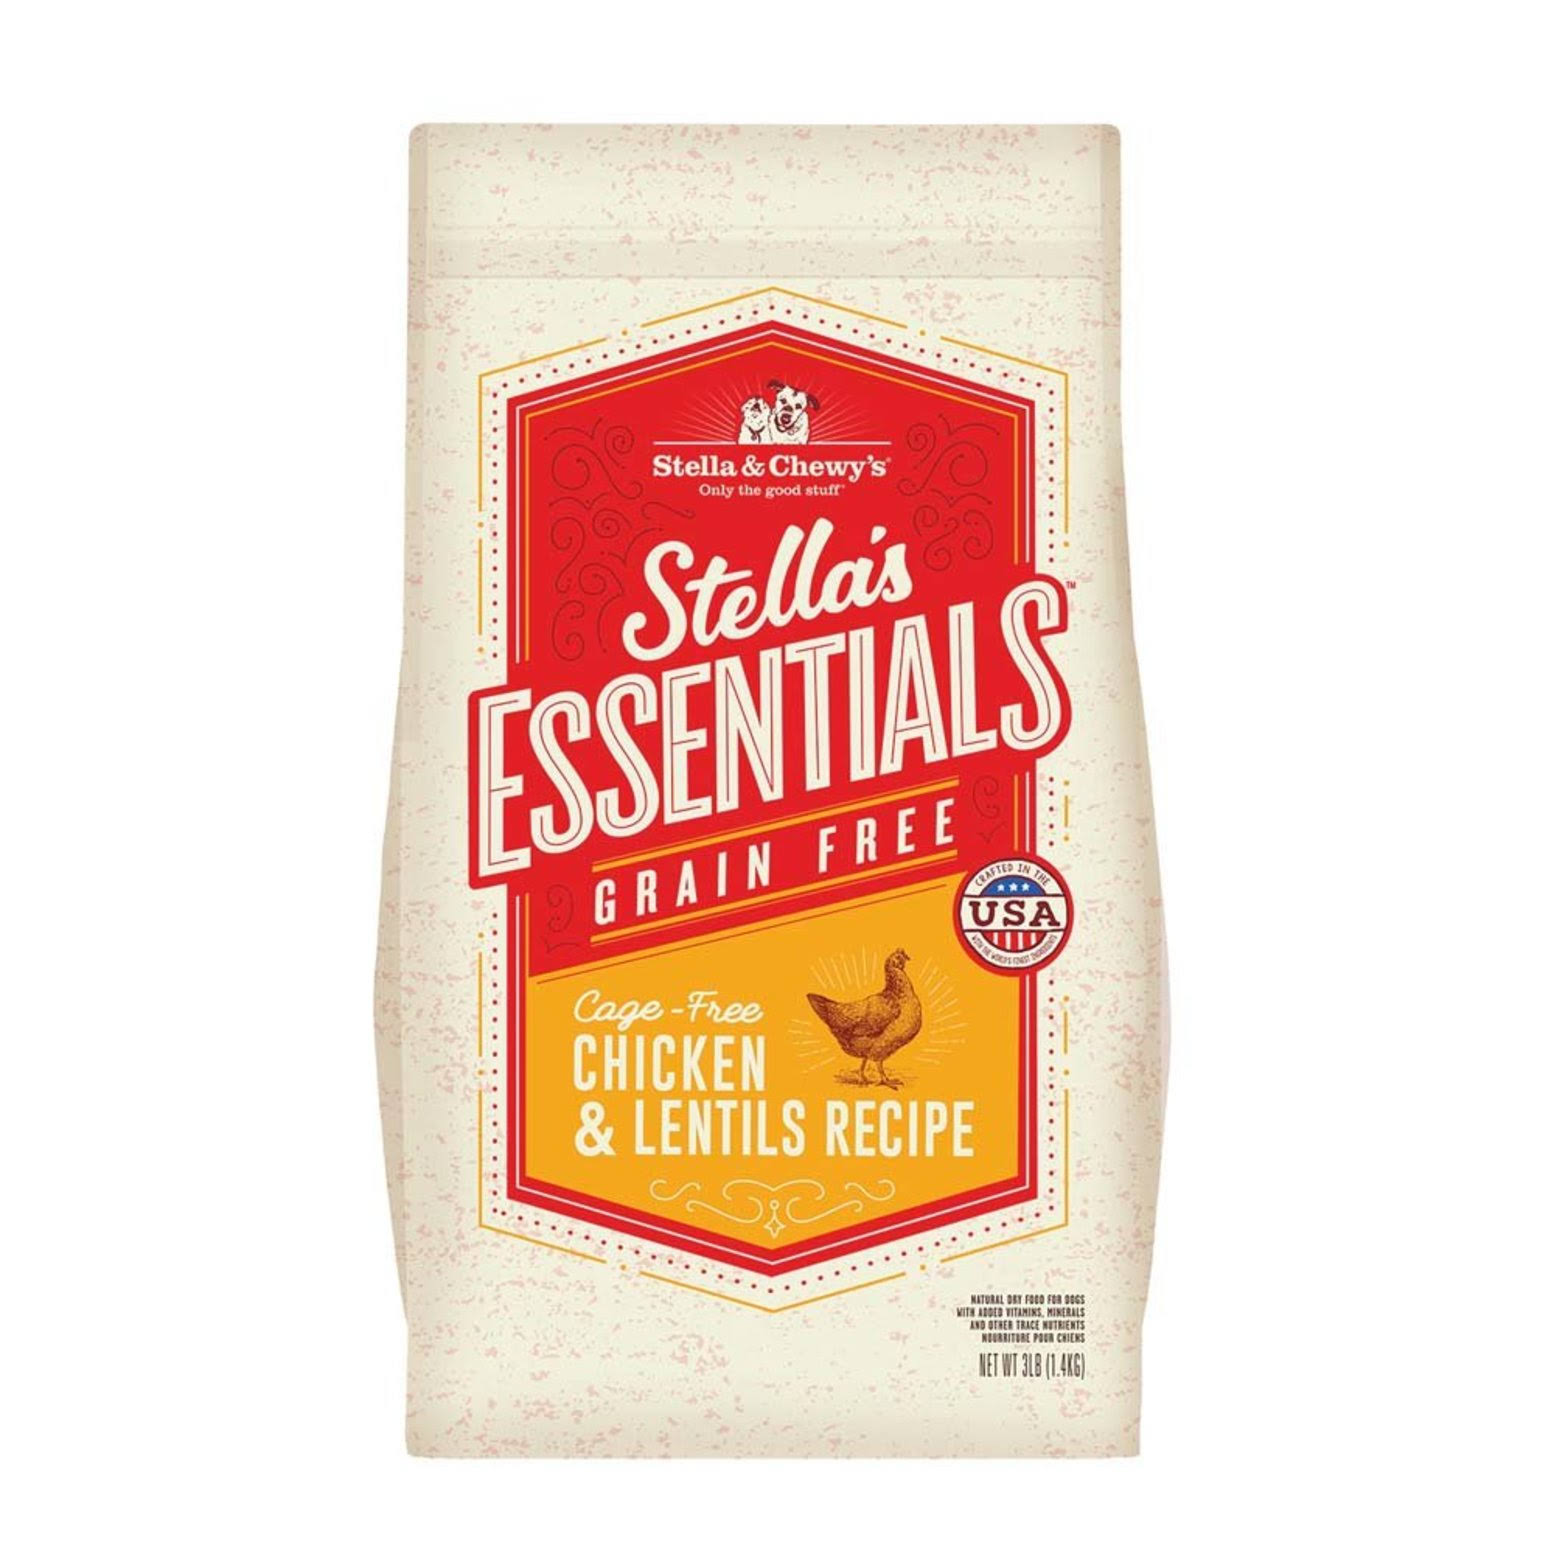 Stella & Chewy's Essentials Grain-Free Cage-Free Chicken & Lentils Recipe Dry Dog Food 25lb